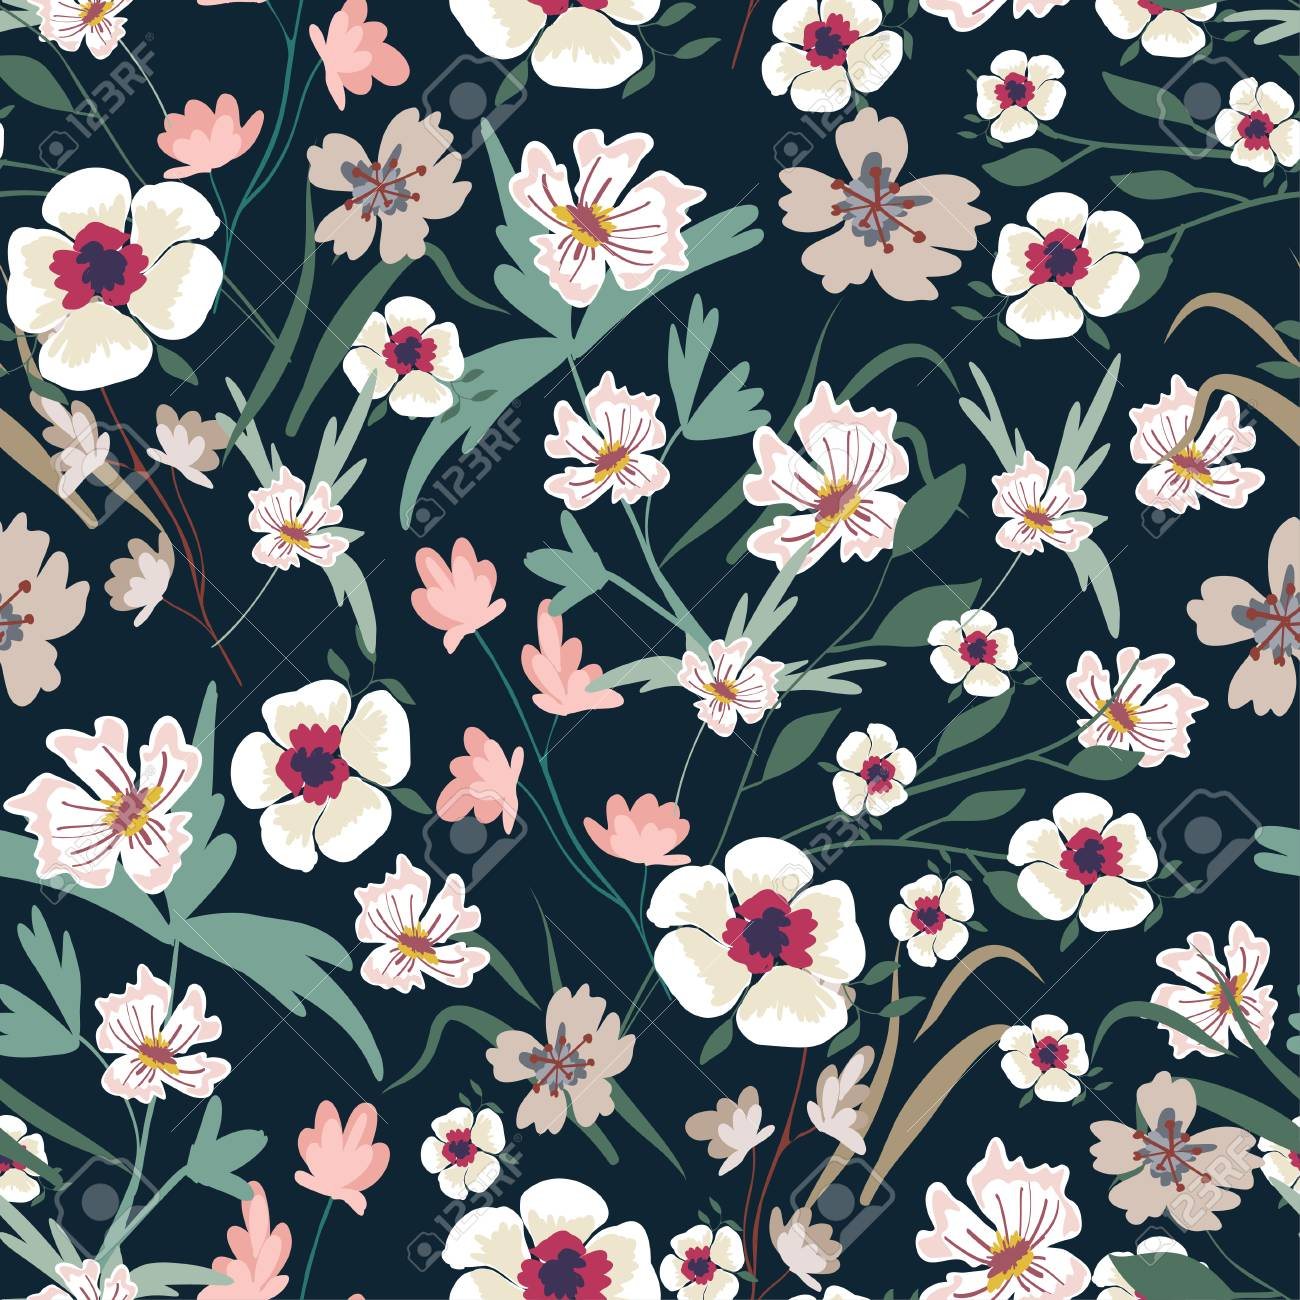 Seamless Pattern With Small Flowers On A Dark Background Modern